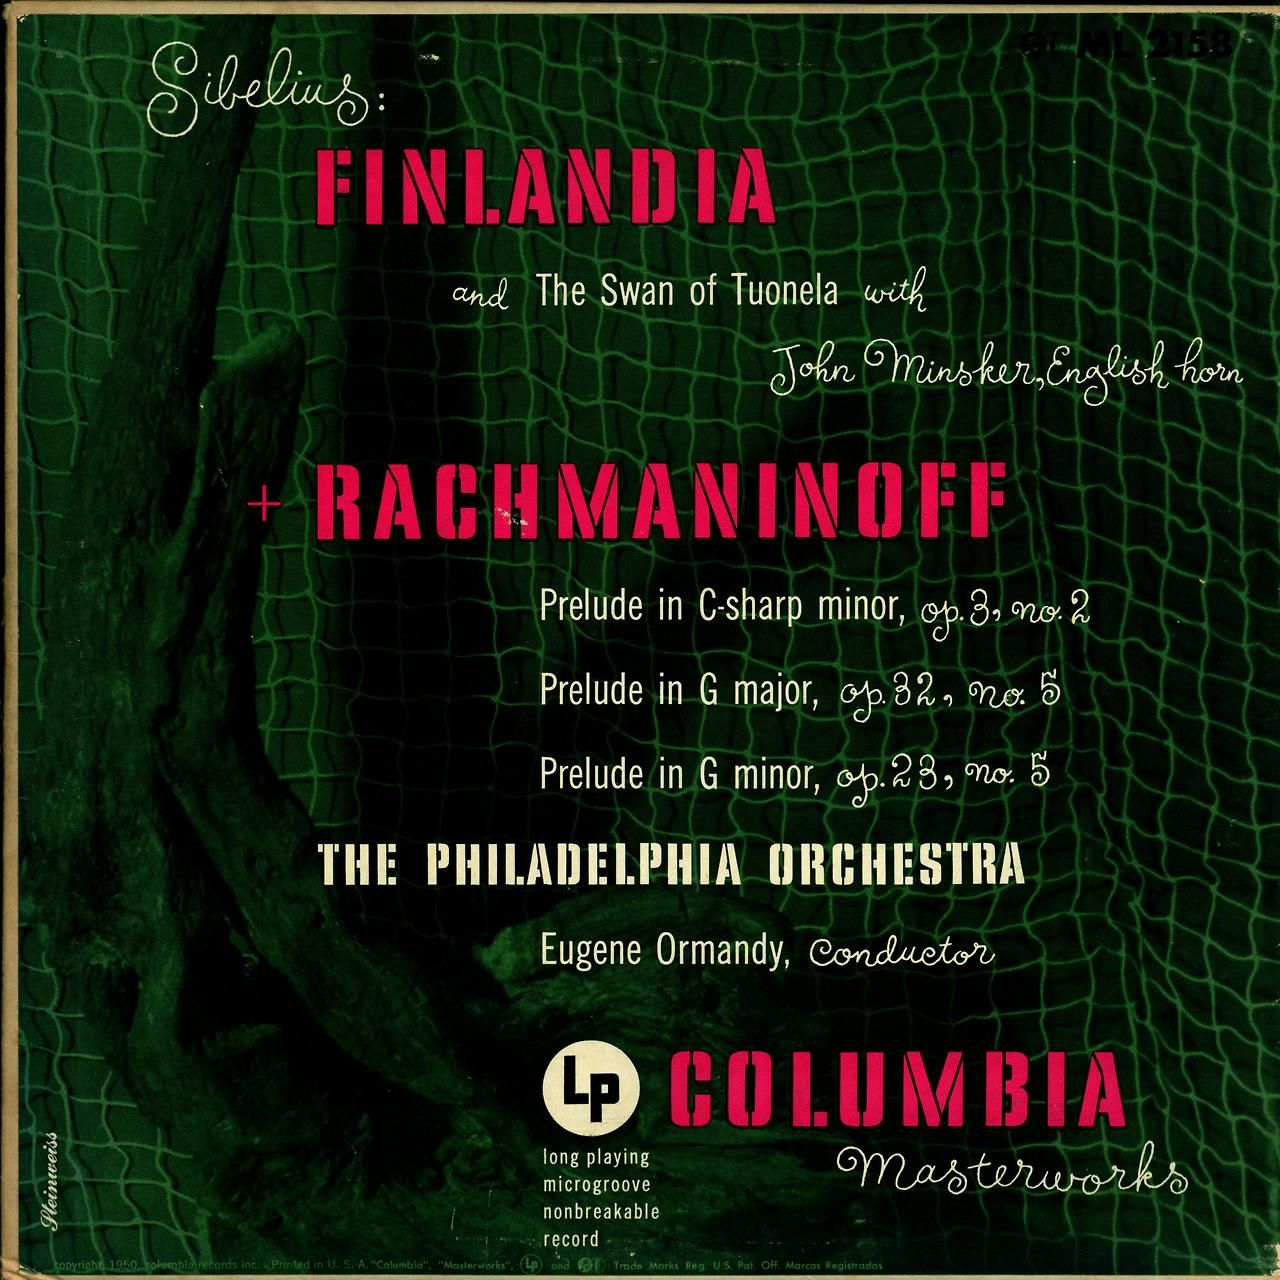 Sibelius- Finlandia:Swan of Tuonela Rachmaninoff- 3 Preludes Philadelphia Orchestra Eugene Ormandy, cond. John Minsker, English horn Columbia Masterworks ML 2158 (1950) Cover Art by Alex Steinweiss